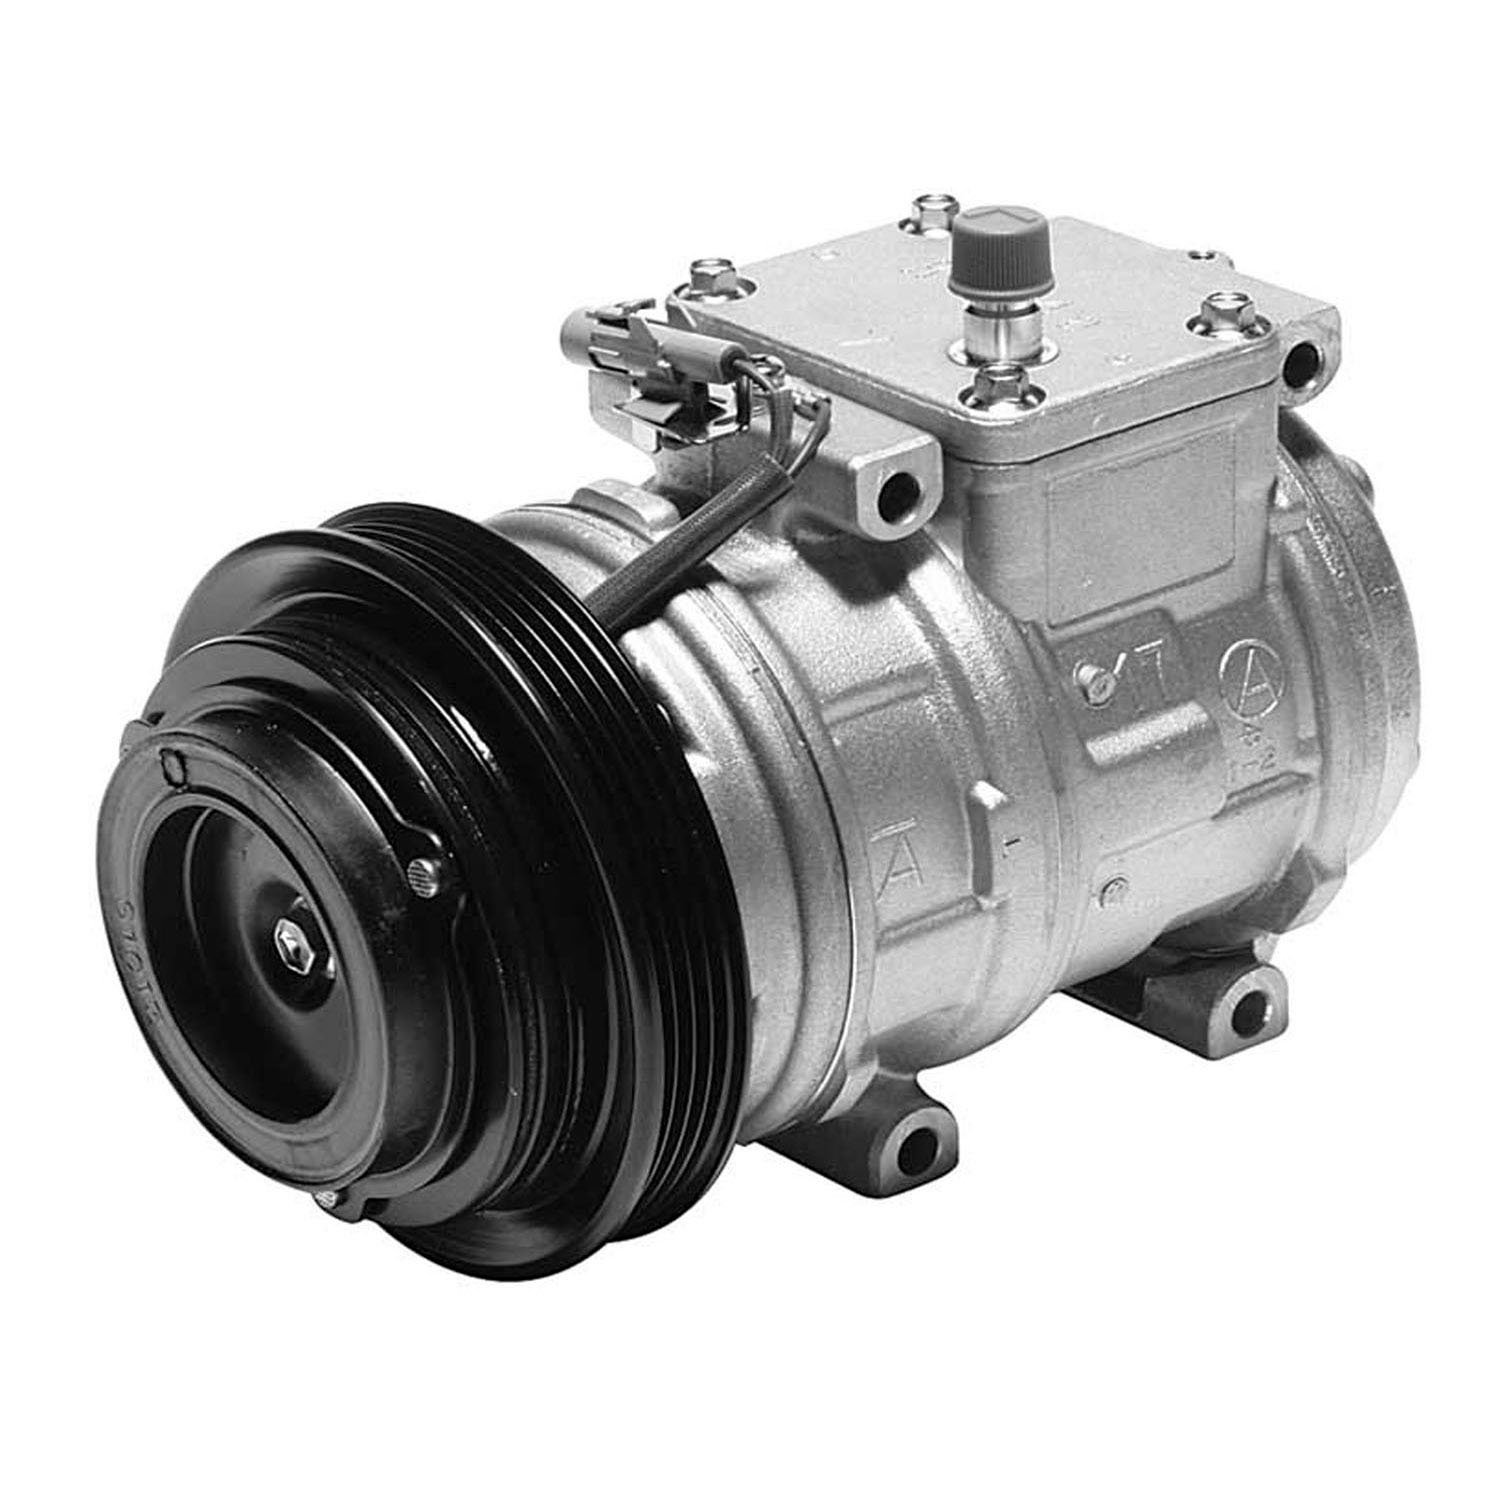 Denso 471-1164 New Compressor with Clutch 4711164